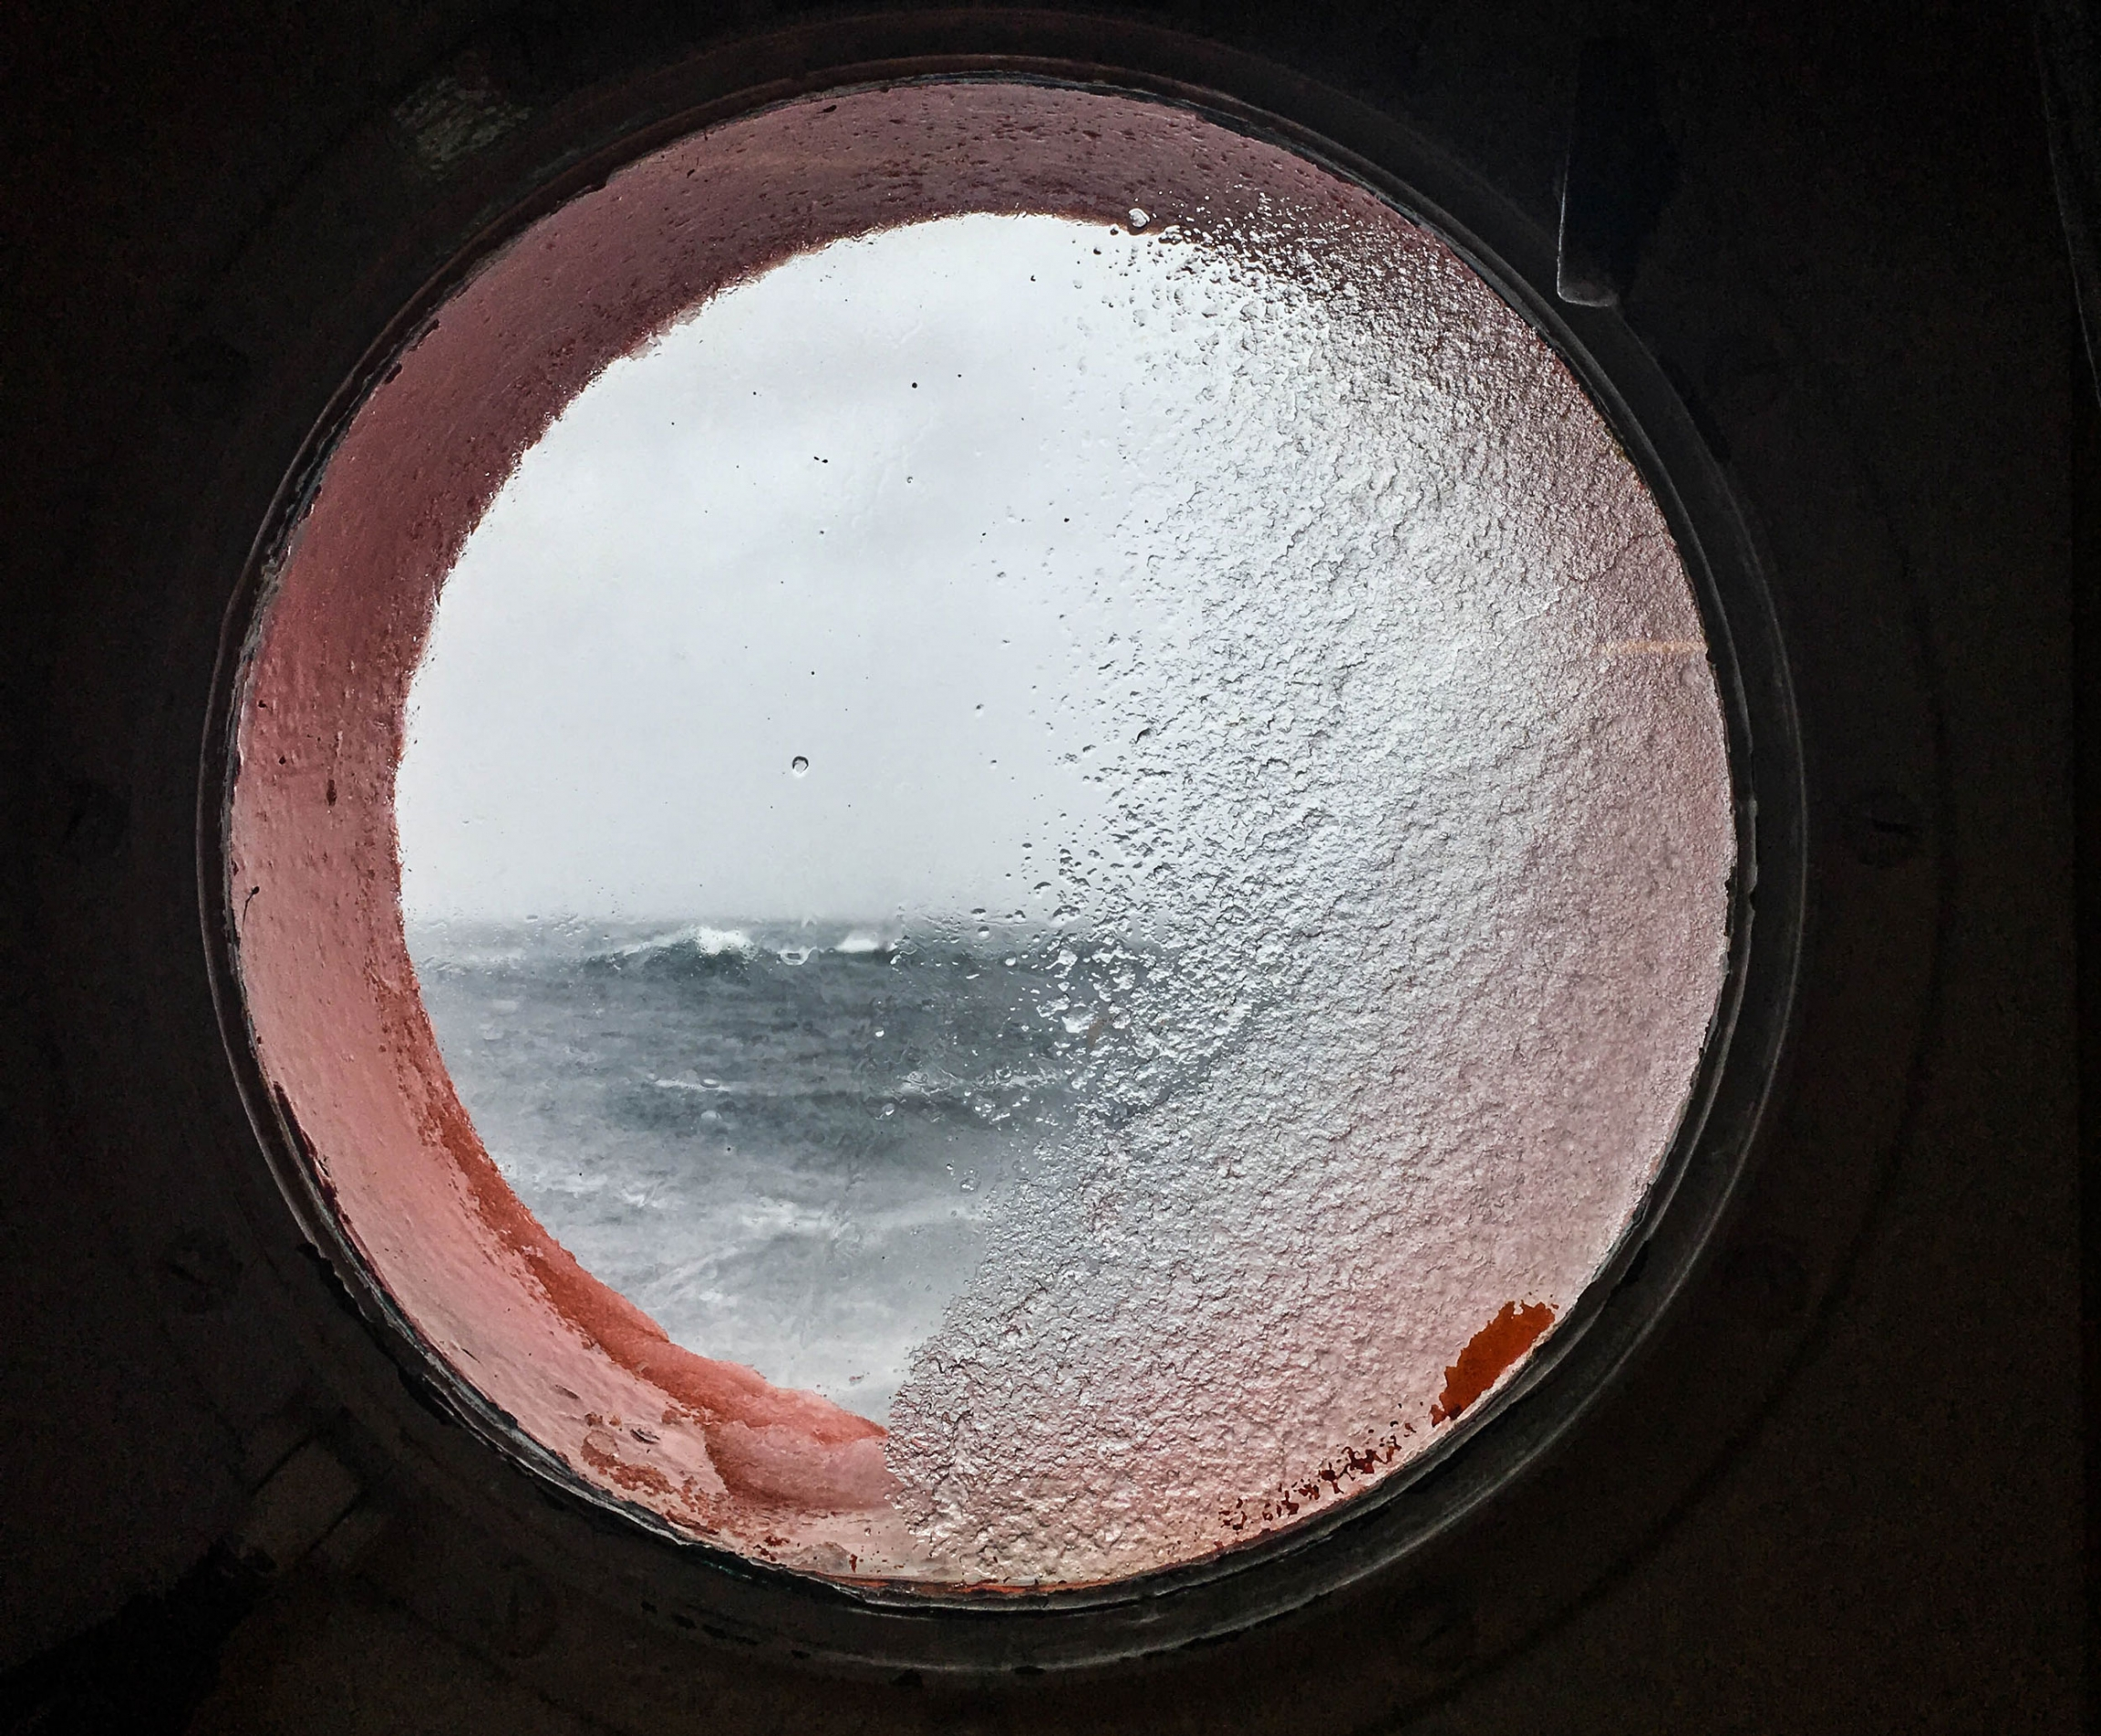 A round window is shown with very choppy waves off in the distance.